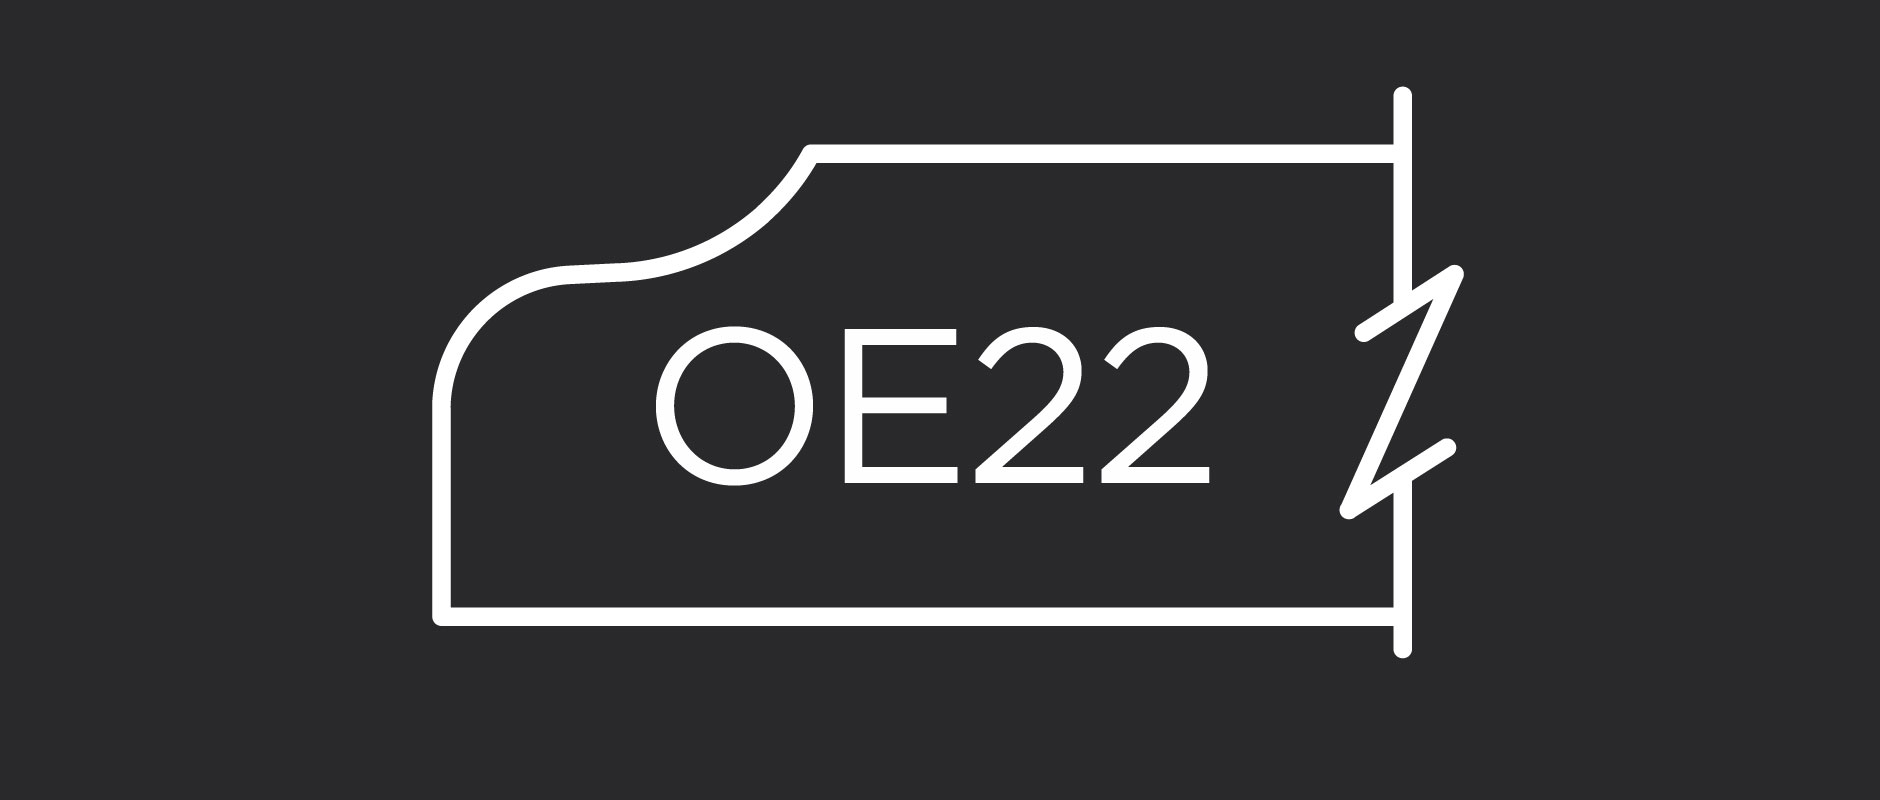 OE22 outside edge profile for cope and stick cabinet doors